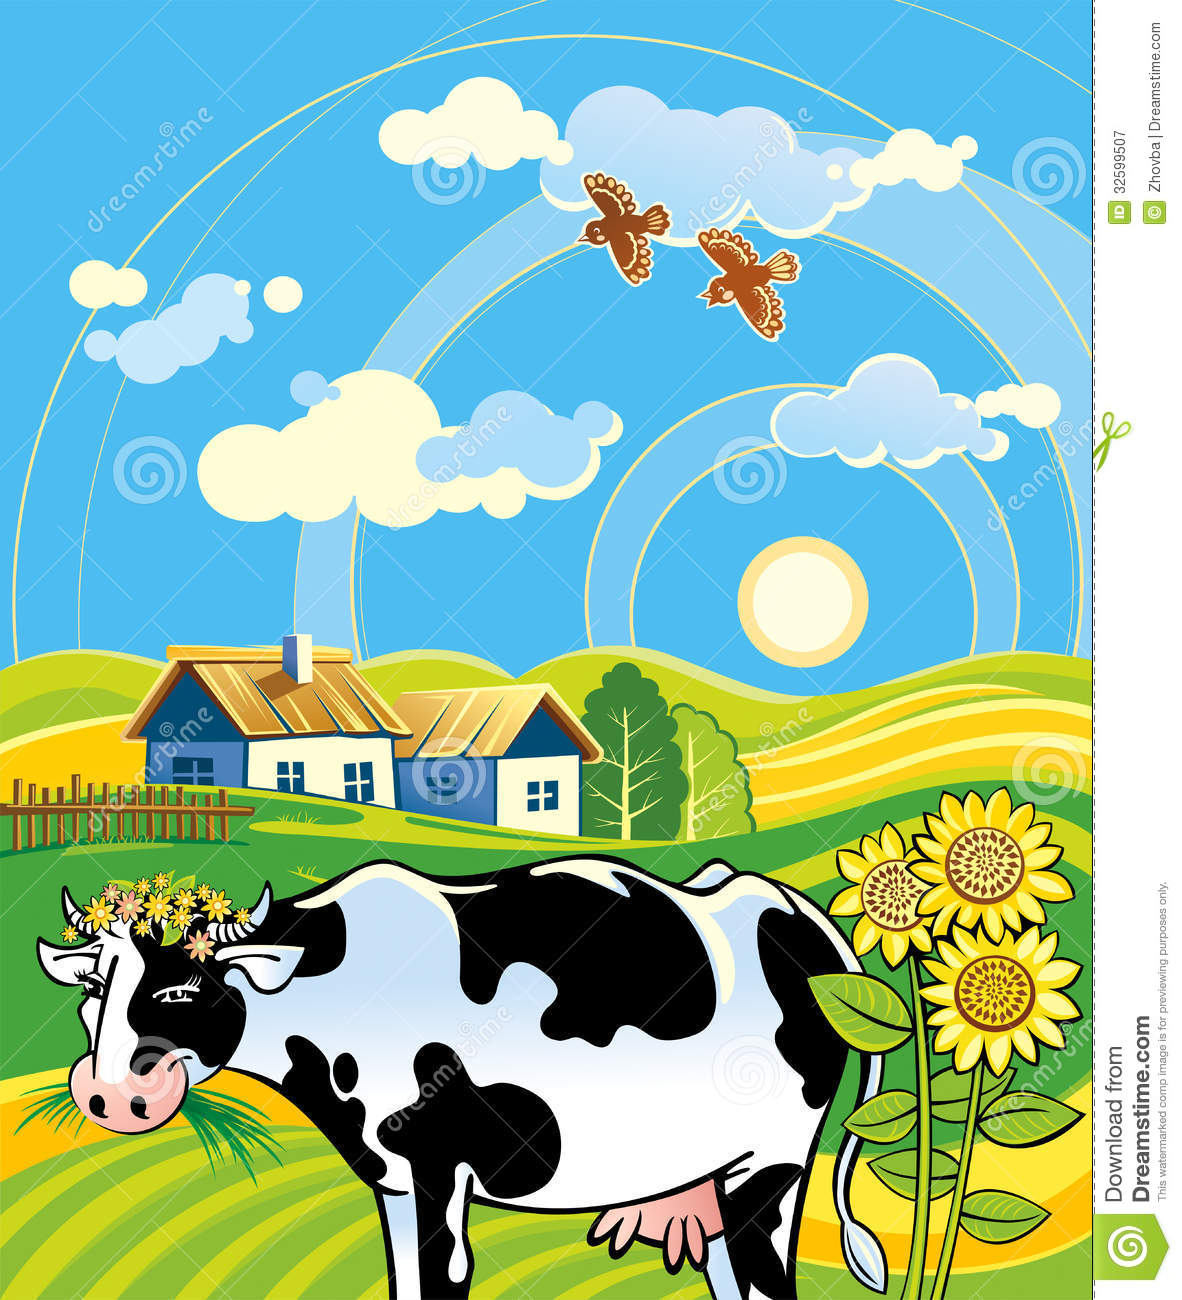 1368630952082 moreover Stock Illustration Cute Pig Cartoon Illustration Image66694996 together with Royalty Free Stock Images Frame Farm Animals Image19454699 moreover Royalty Free Stock Photos White Owl Image13982768 besides Owl Pellet. on animal barn plans